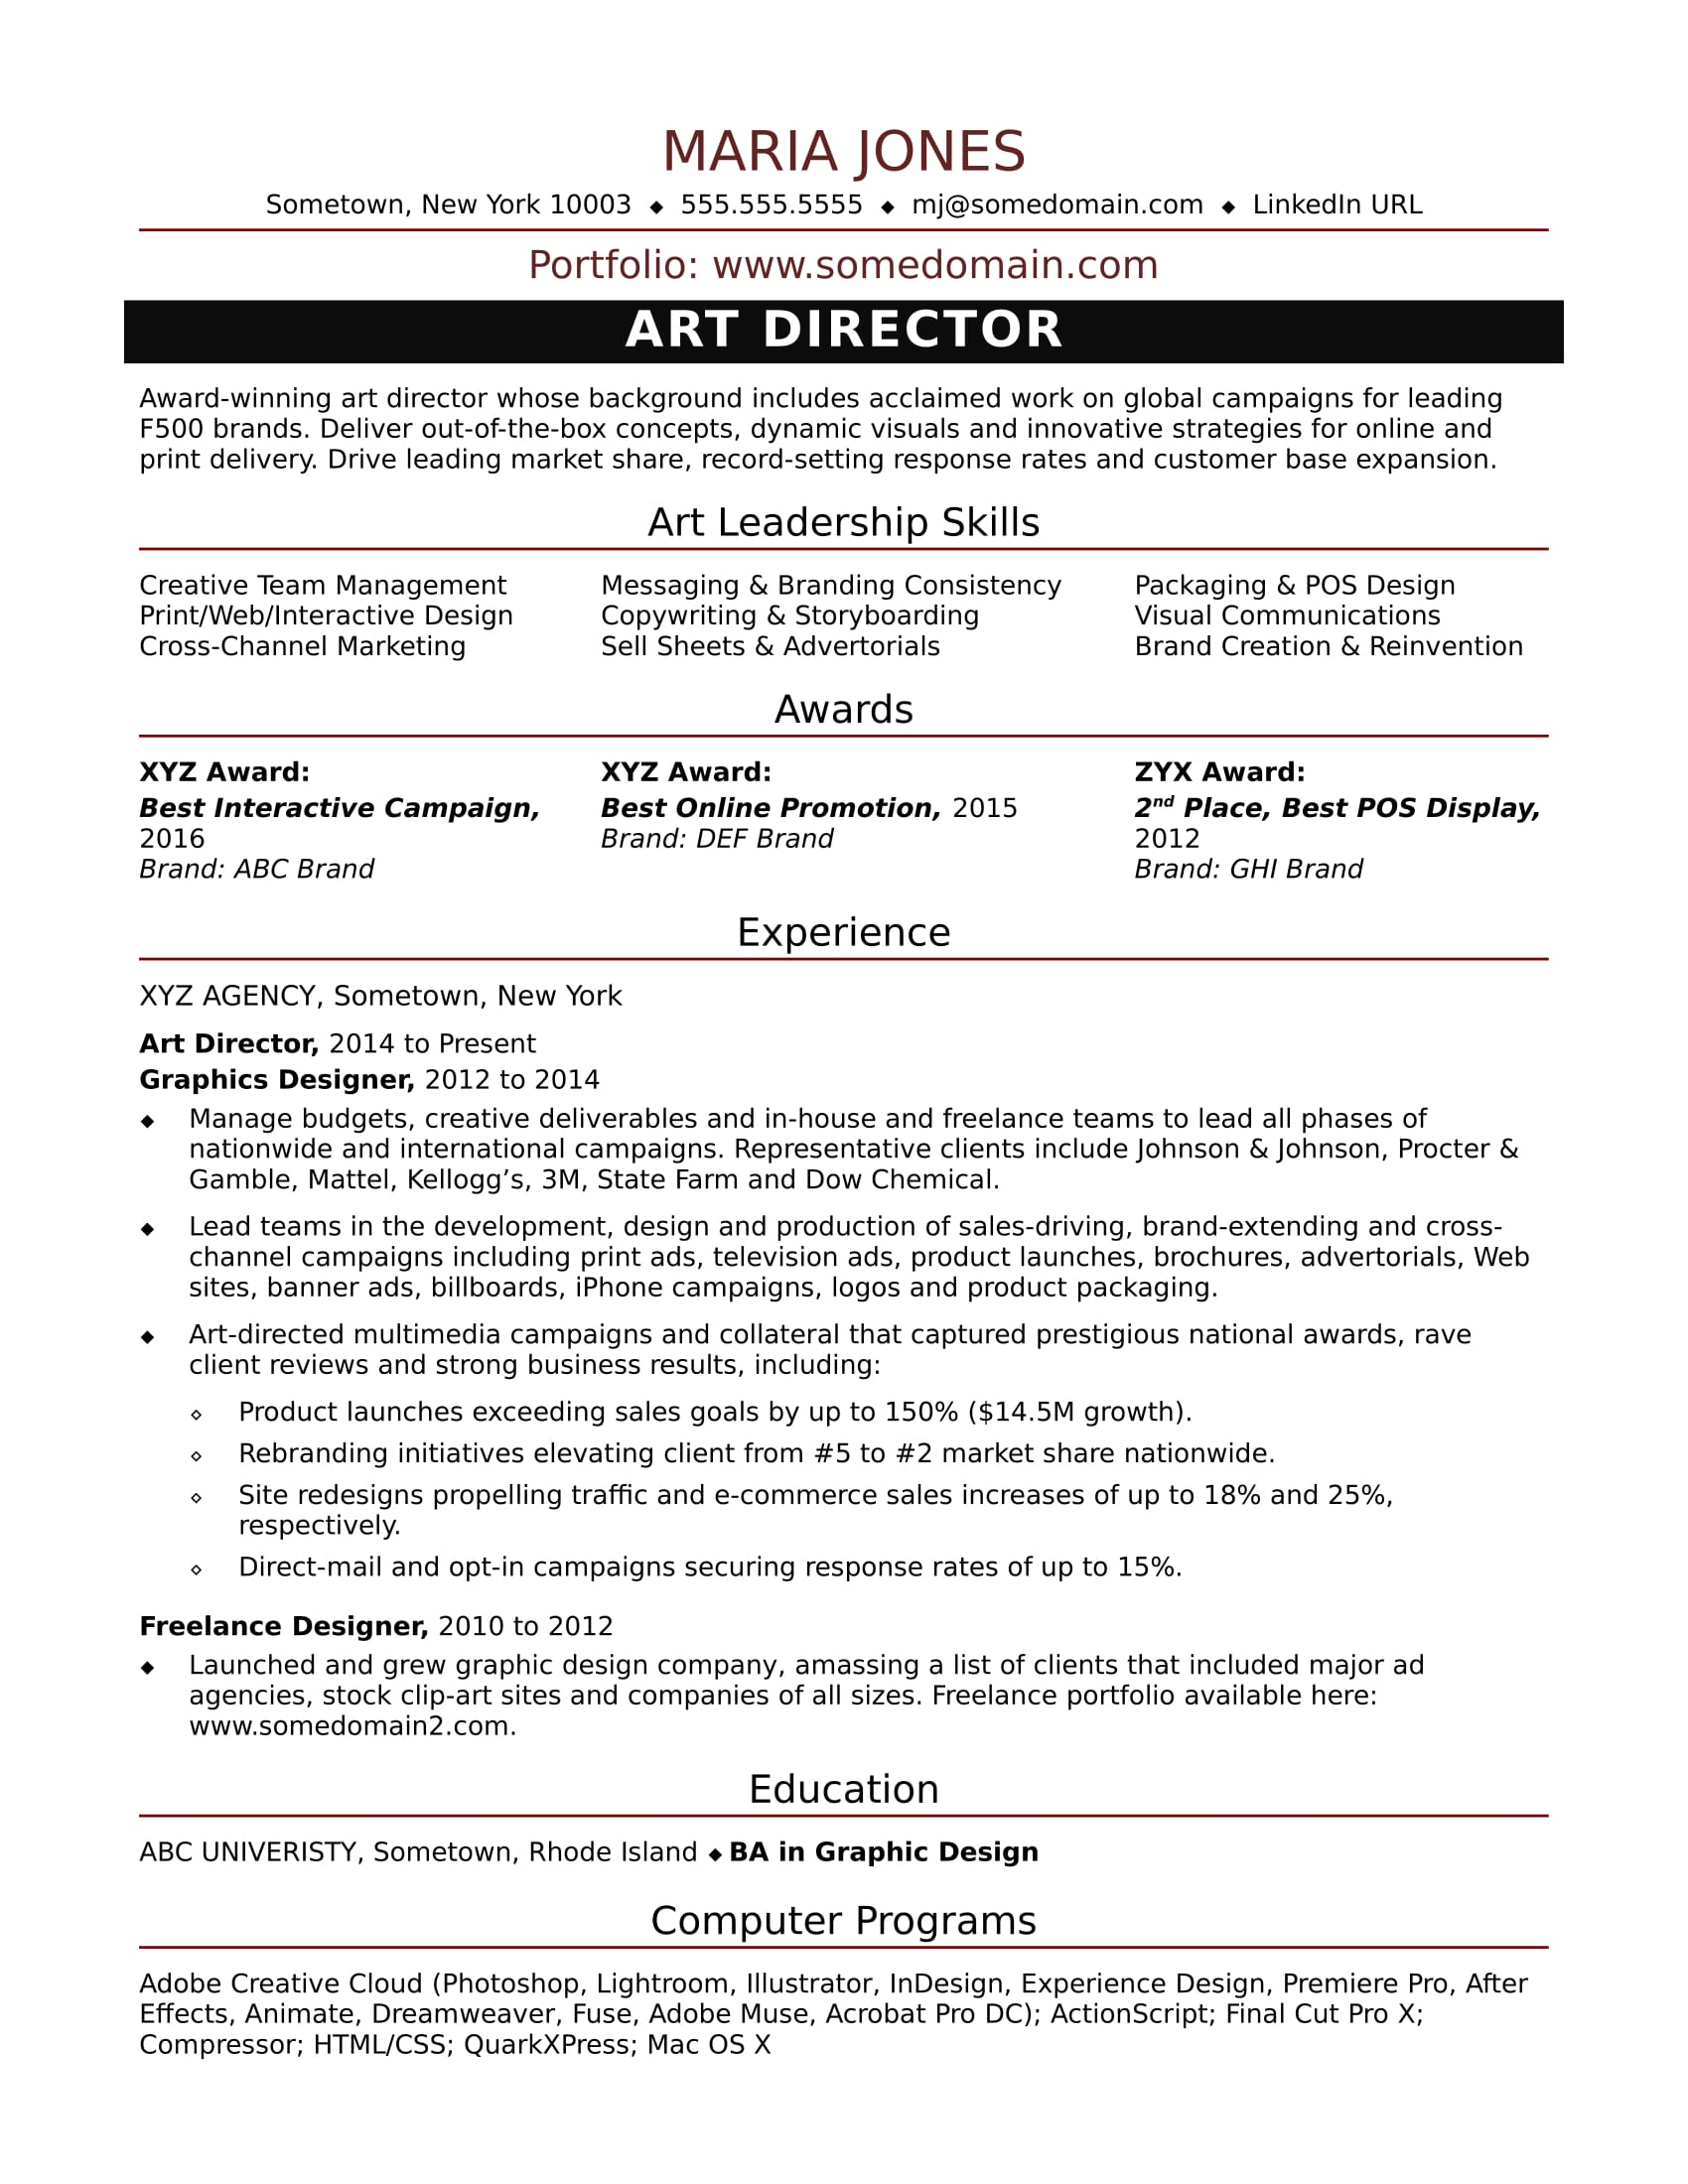 art director resume sample resume for a midlevel director 14249 | art director midlevel